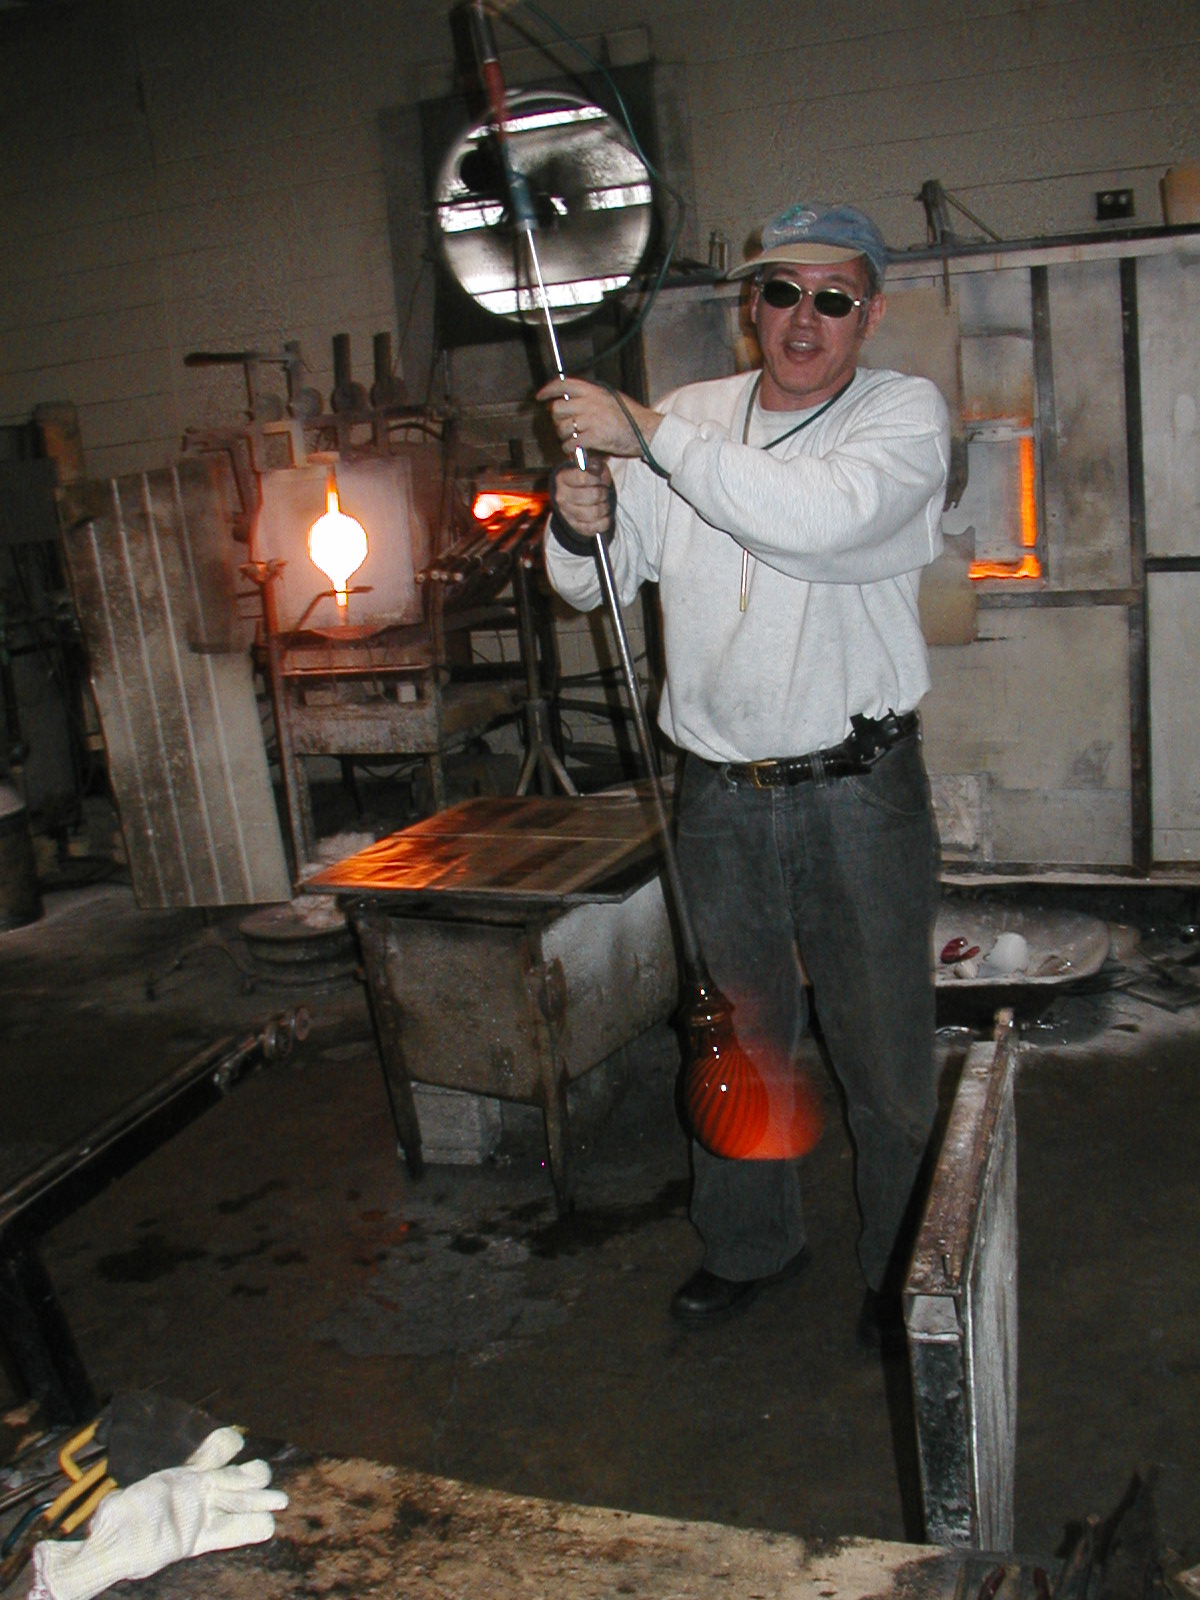 Glassblower.Info - Joel Bless Glasslight Glassblowing class January 18 2004 #104